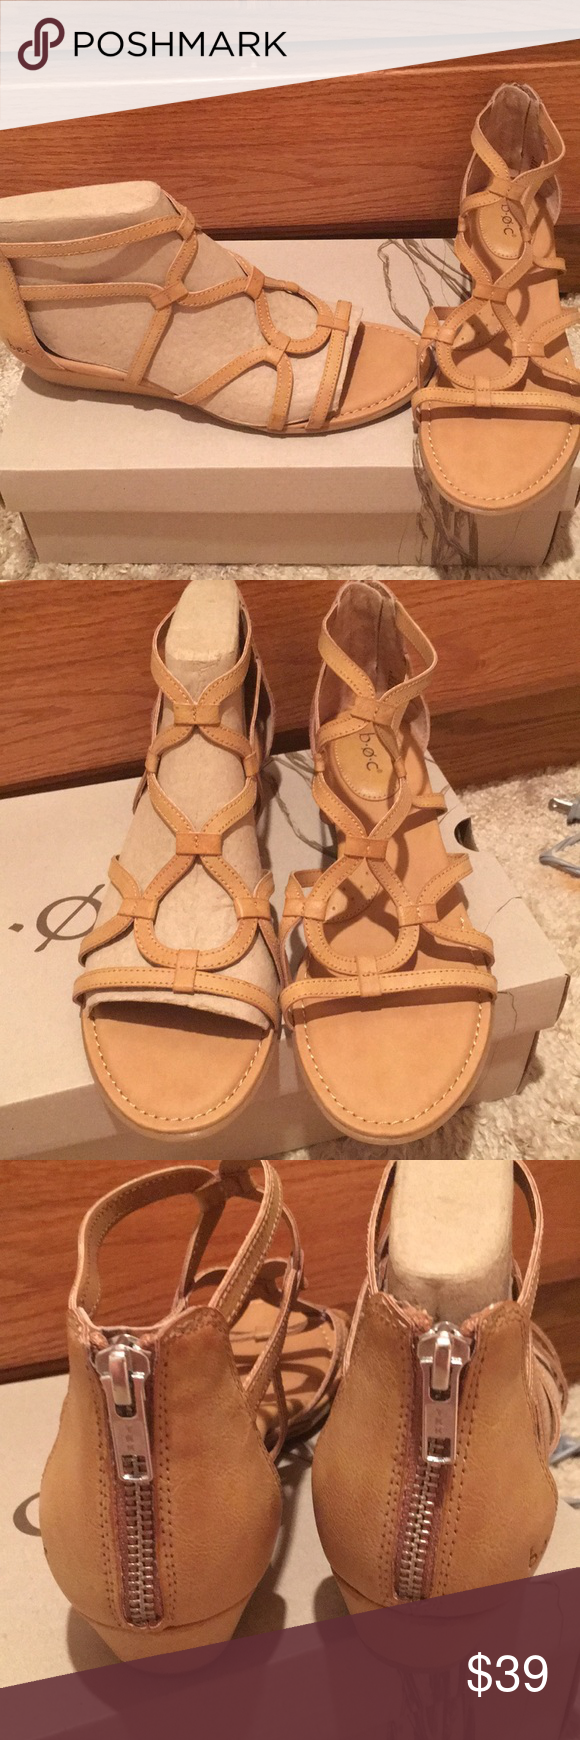 35d6a2515b4 😃HP NWT B.O.C. Born Concept Pawel natural sandals New in box BOC by born  concept natural Pawel sandal gladiator style zip up back